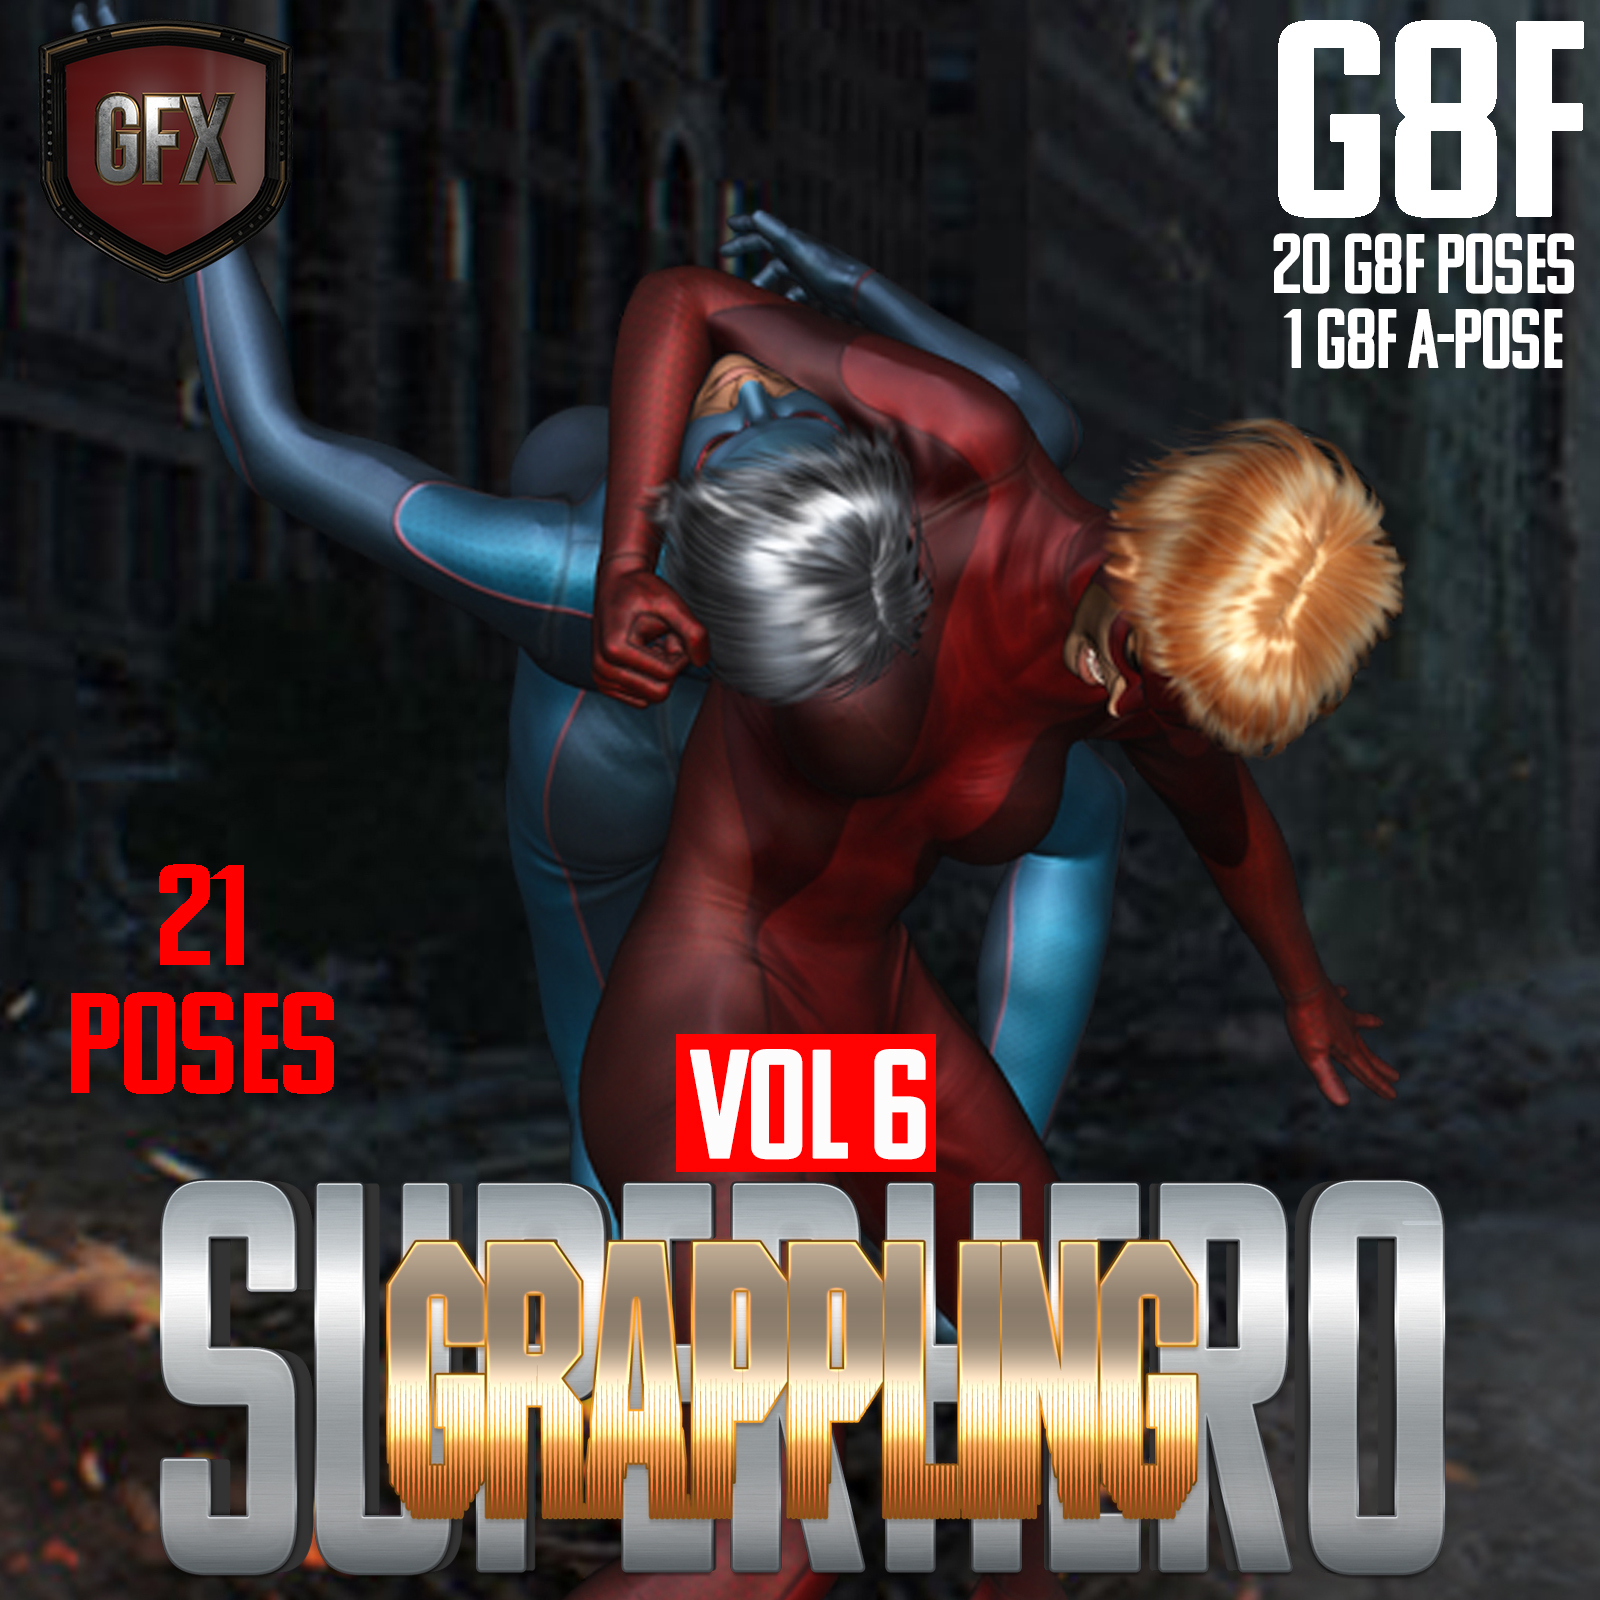 SuperHero Grappling for G8F Volume 6 by GriffinFX